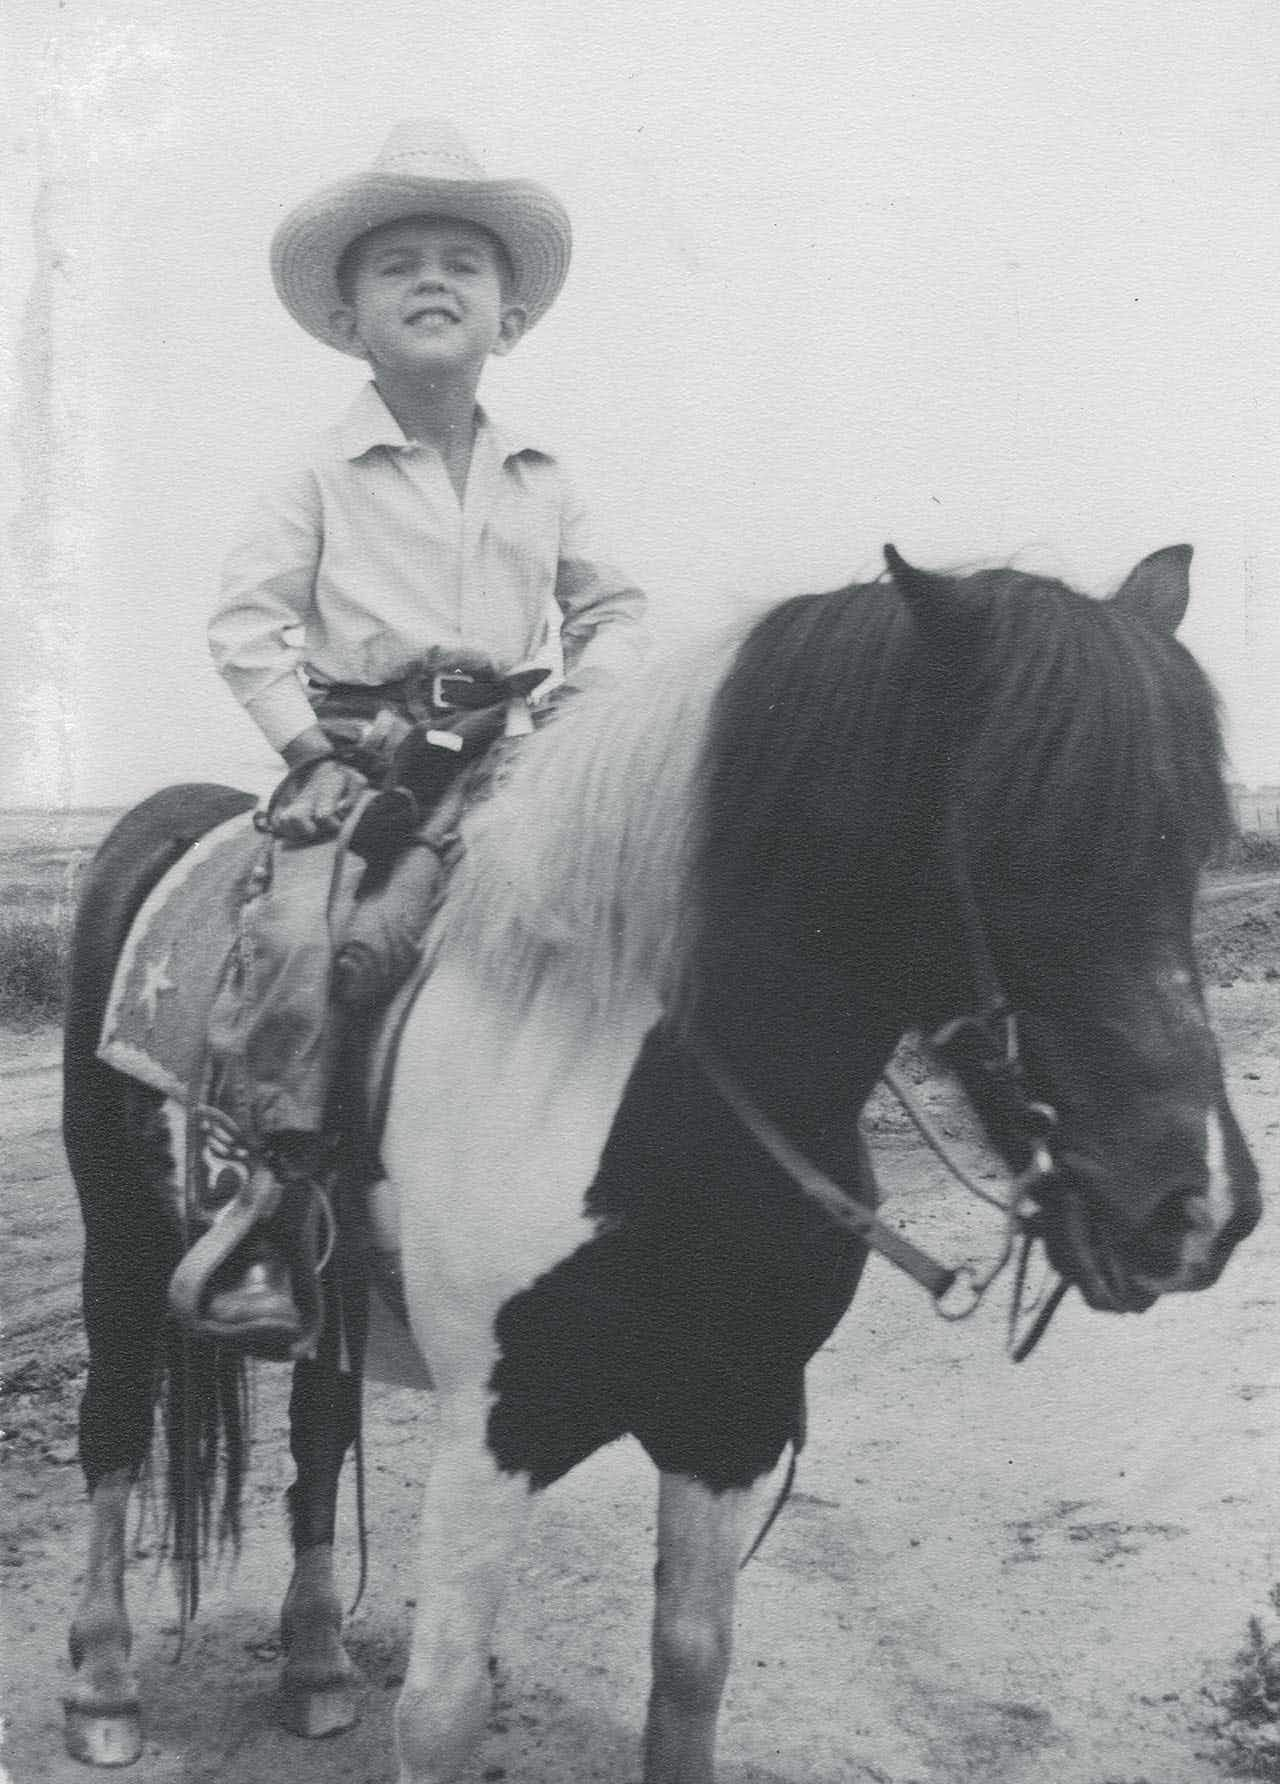 McMurtry as a boy on his family's ranch, sitting on his first pony.